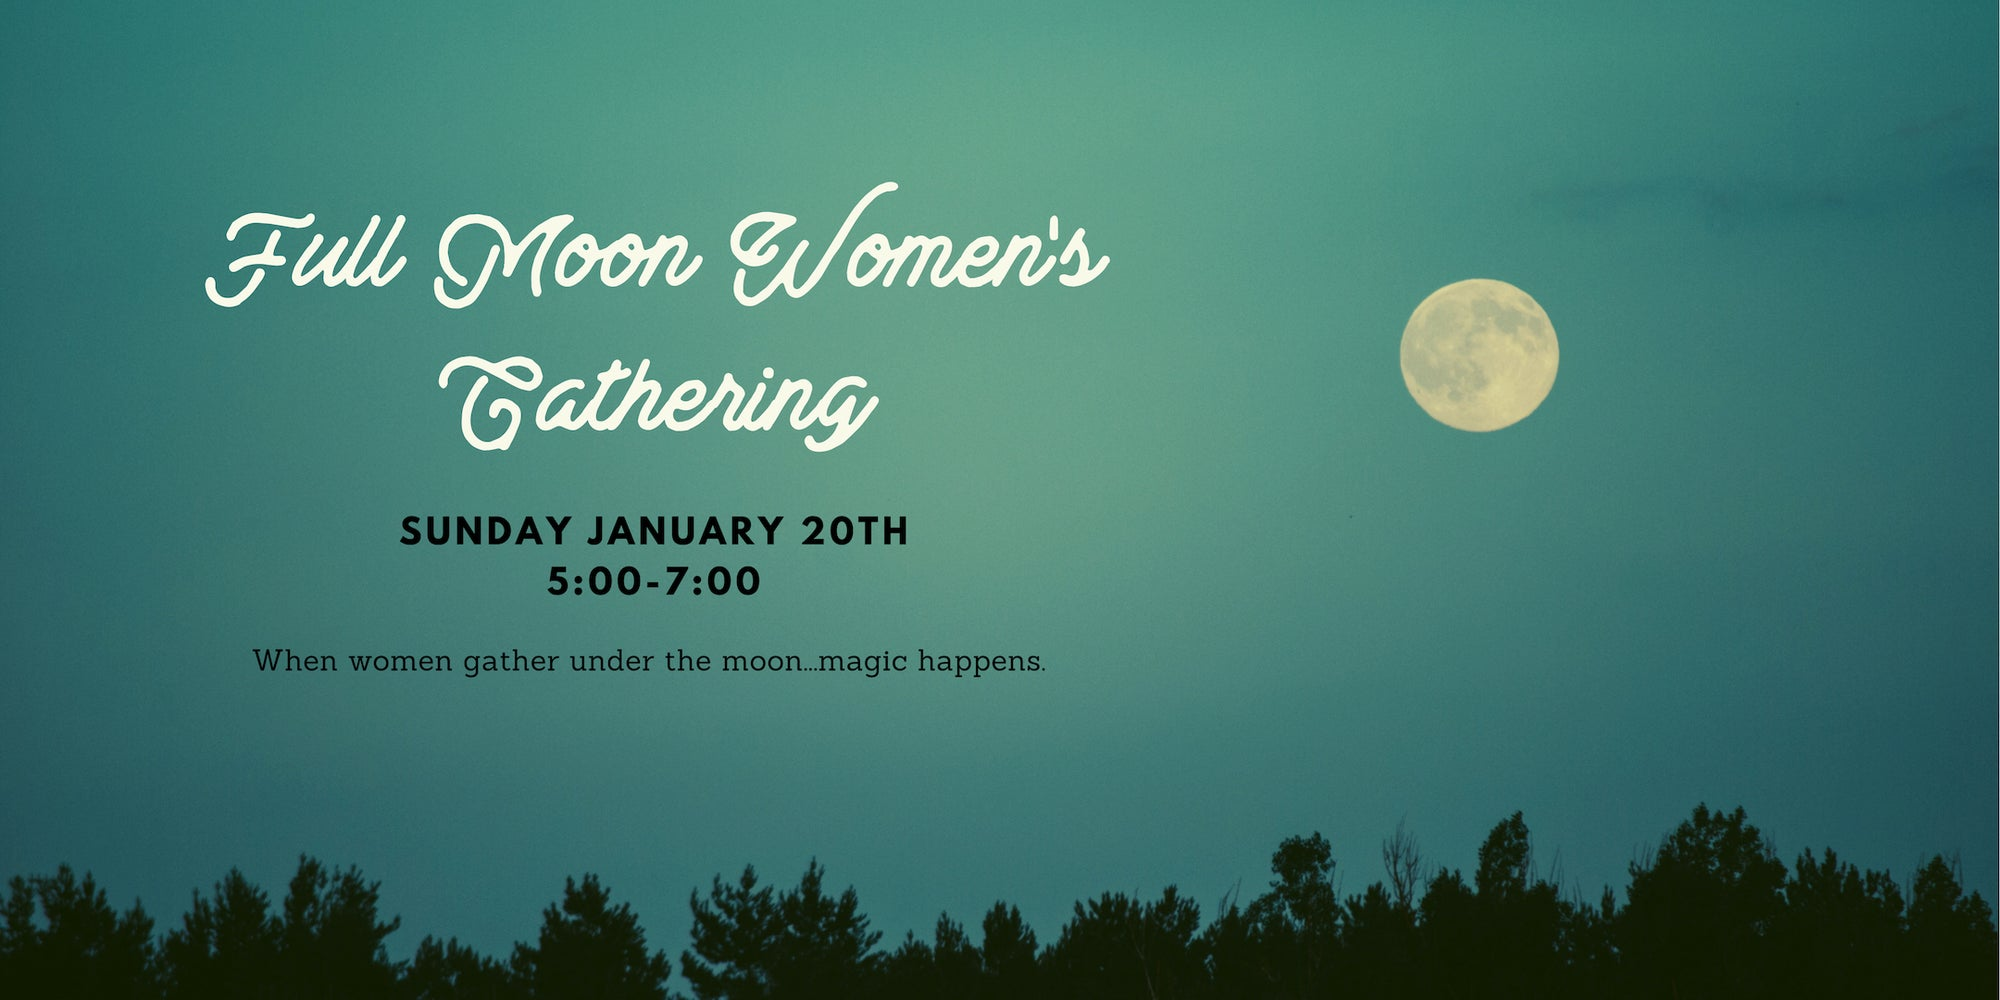 Full Moon Gathering